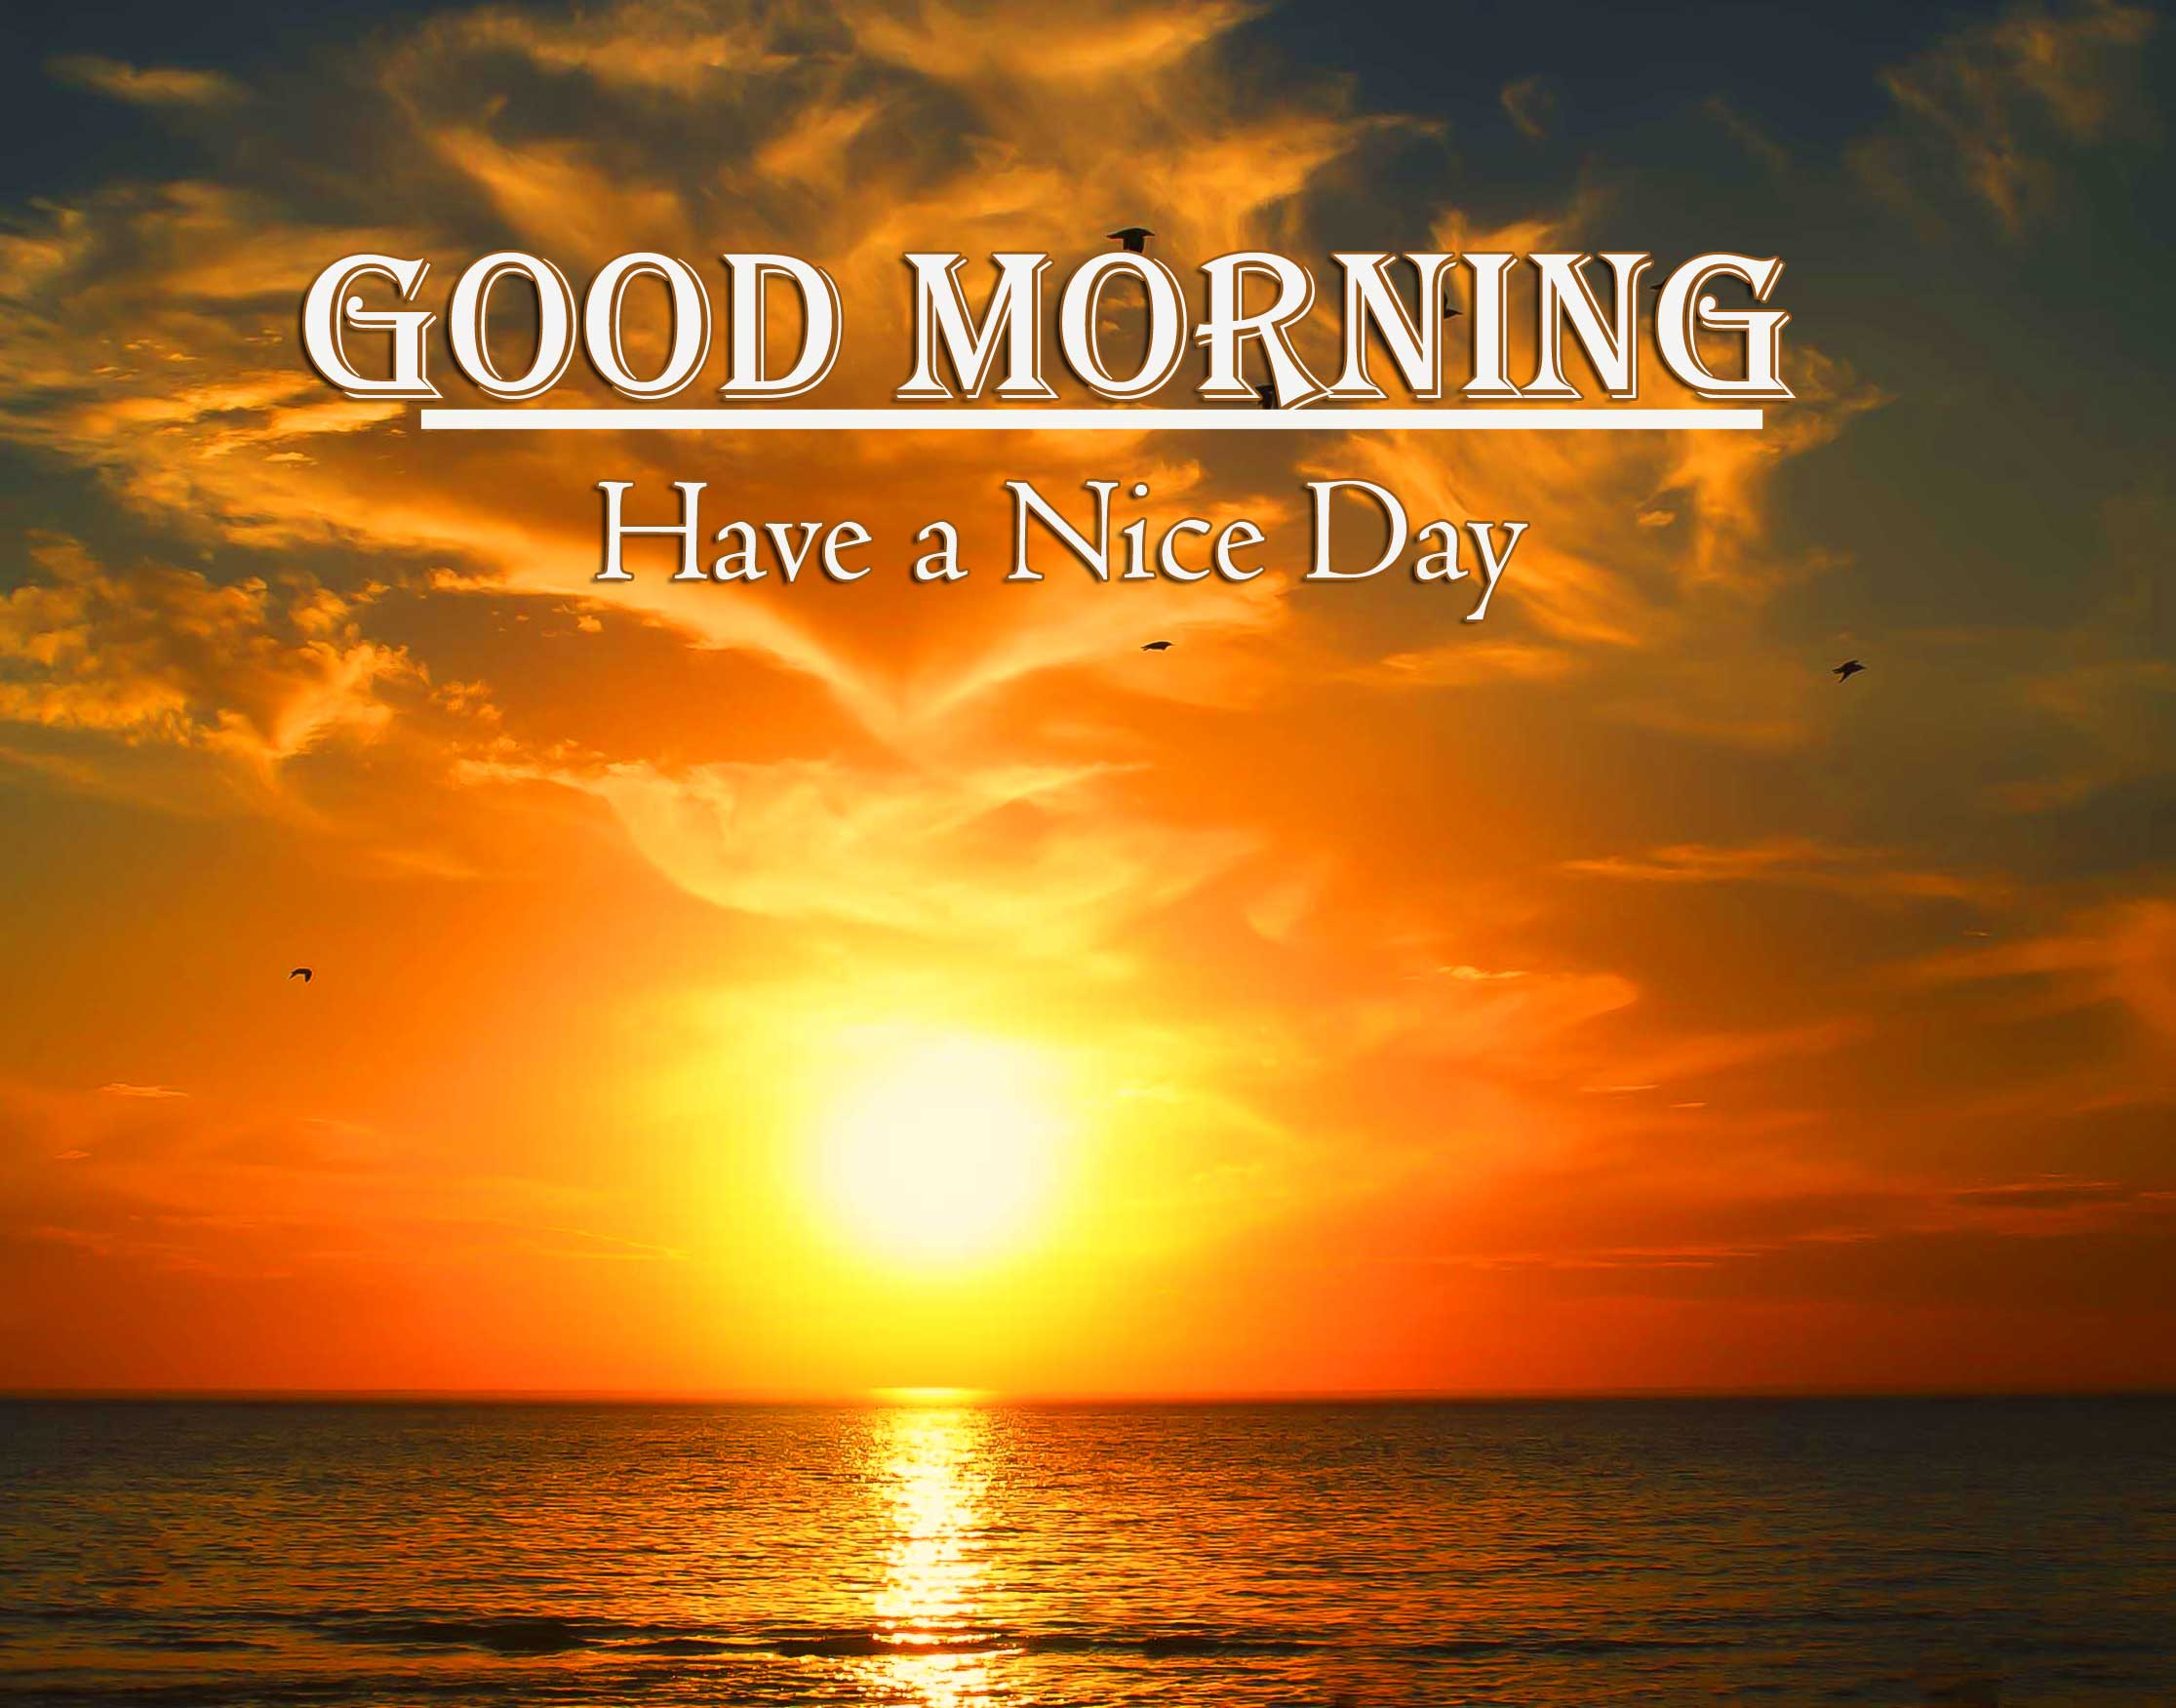 Good Morning Wishes With Sunrise Pics Free Download Latest